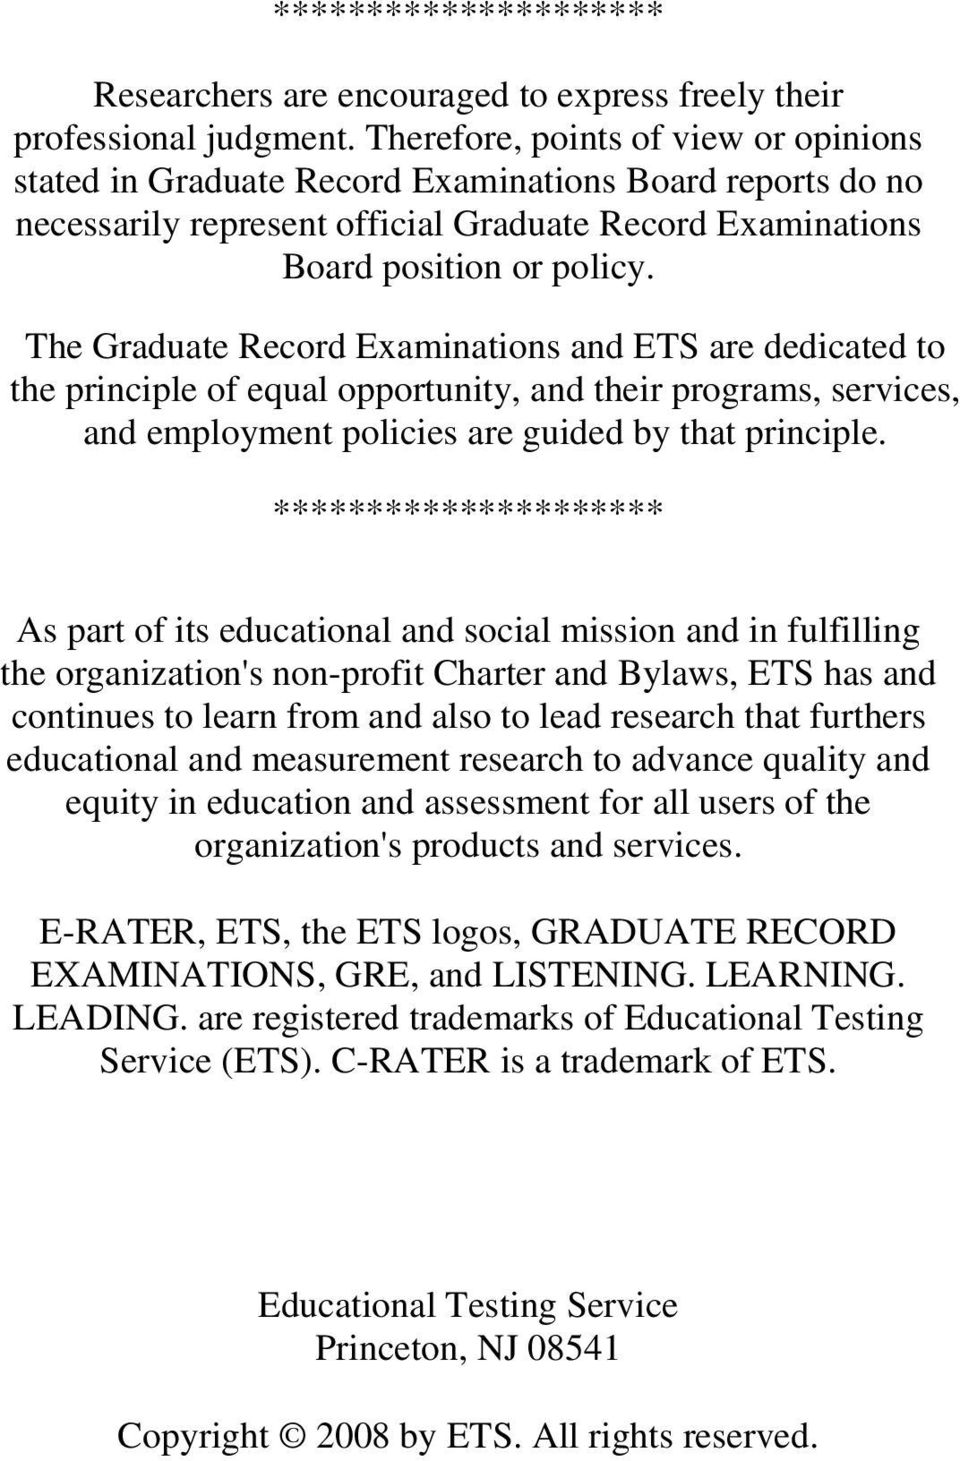 The Graduate Record Examinations and ETS are dedicated to the principle of equal opportunity, and their programs, services, and employment policies are guided by that principle.